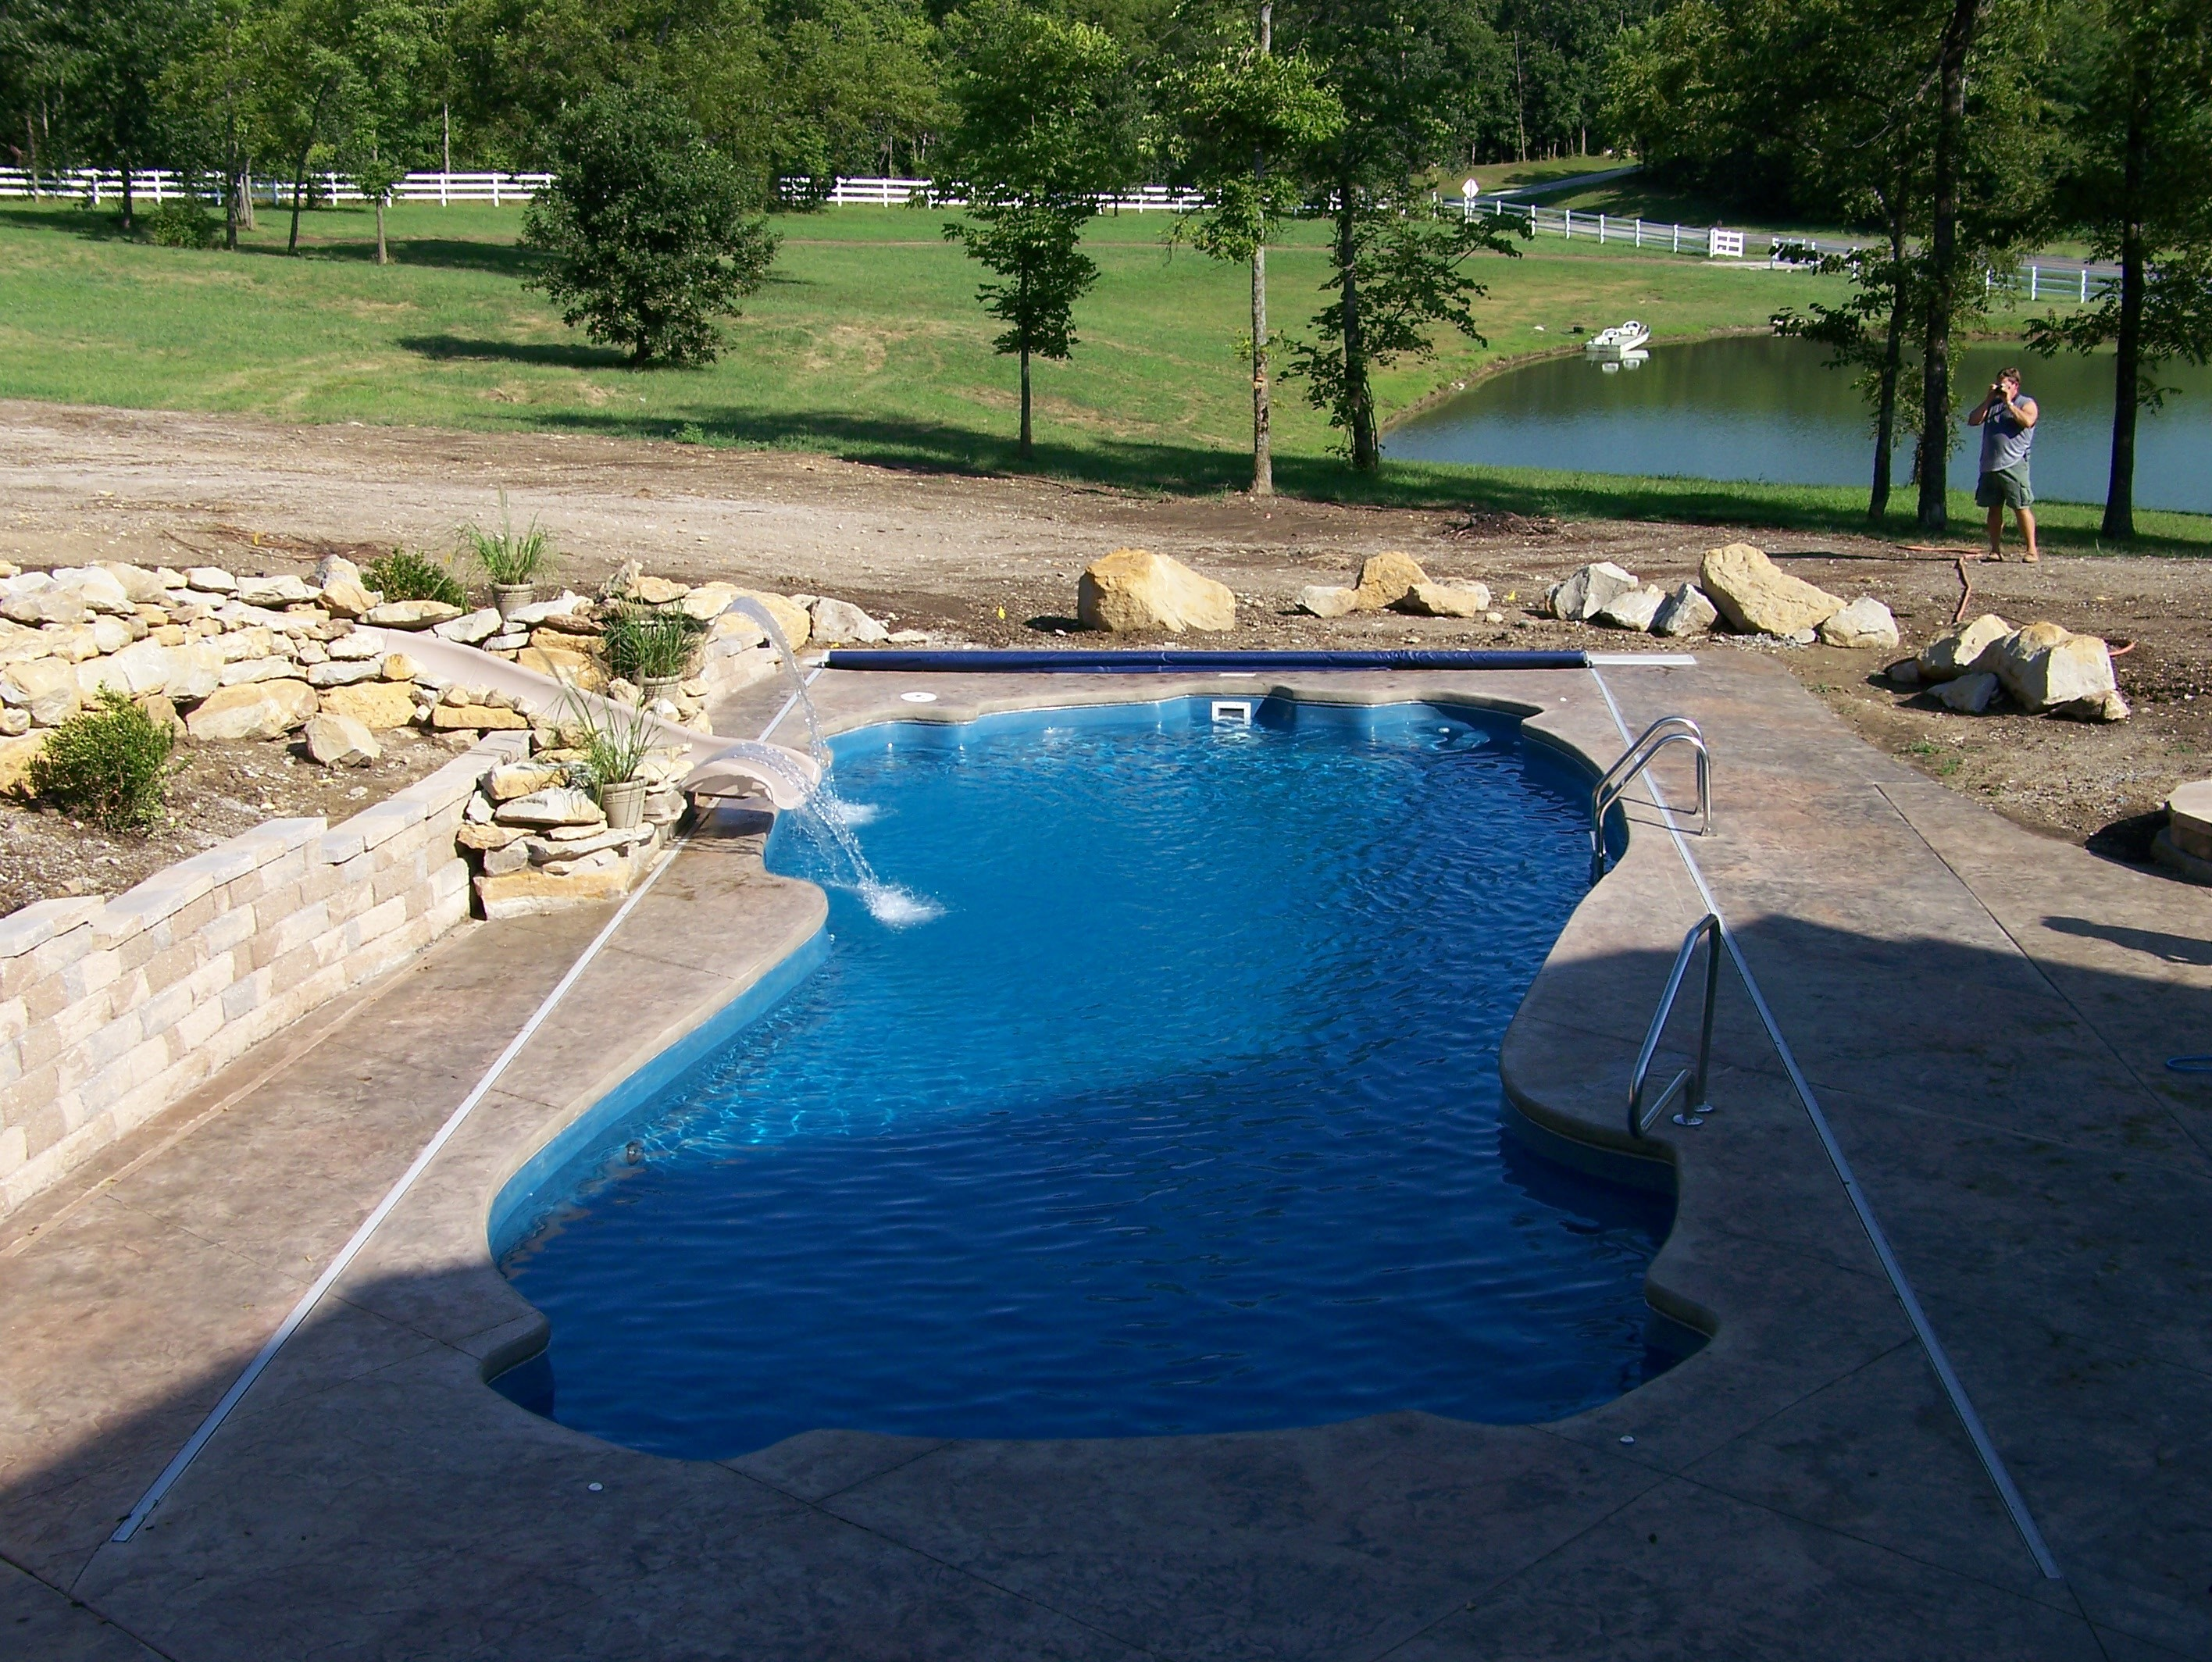 Sideview of fiberglass pool with slide.